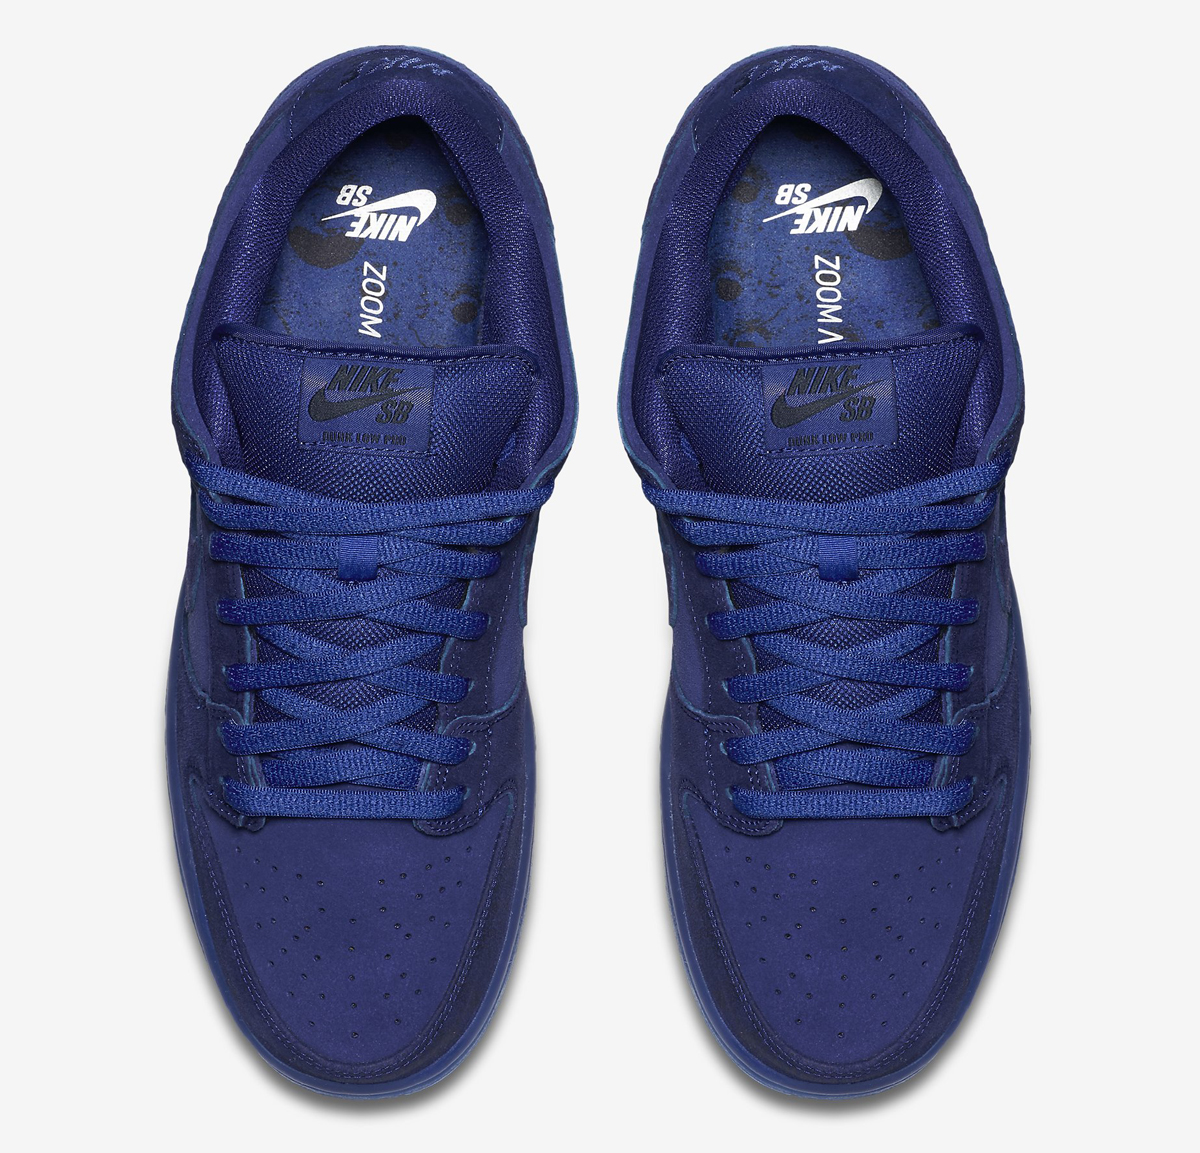 nike-sb-dunk-low-blue-moon-official-images-2.jpg